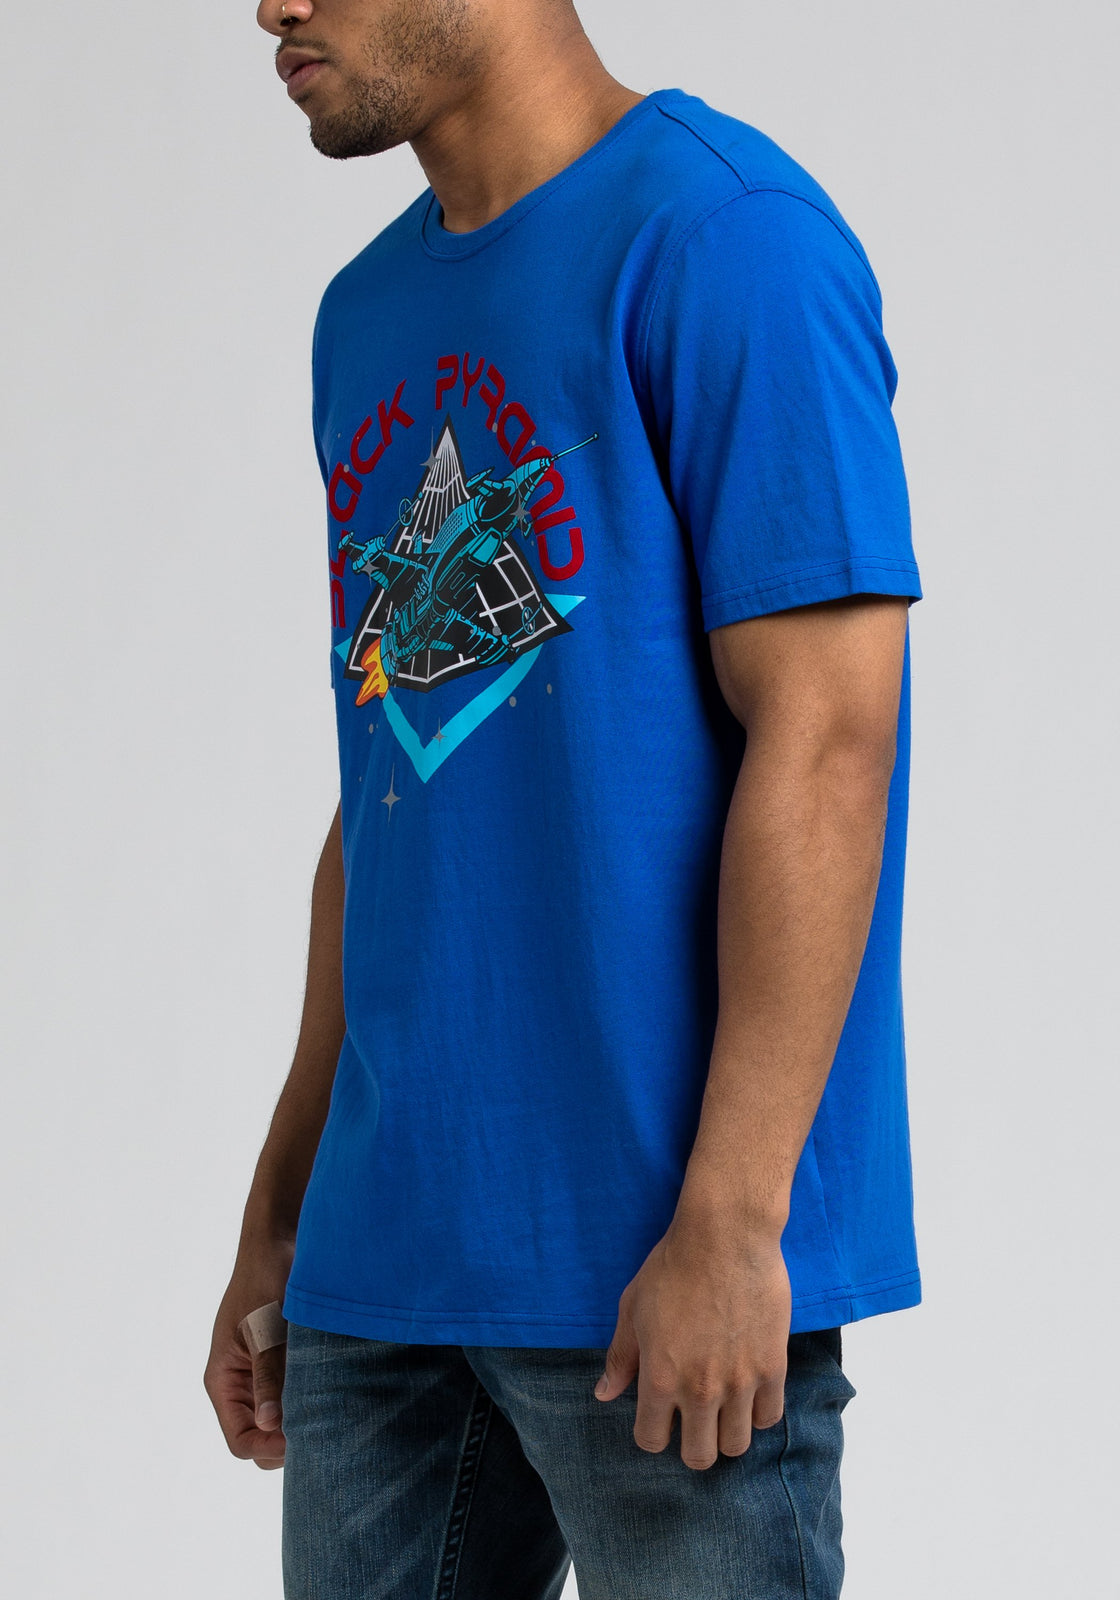 BP SpaceCraft Tee - Color: Blue